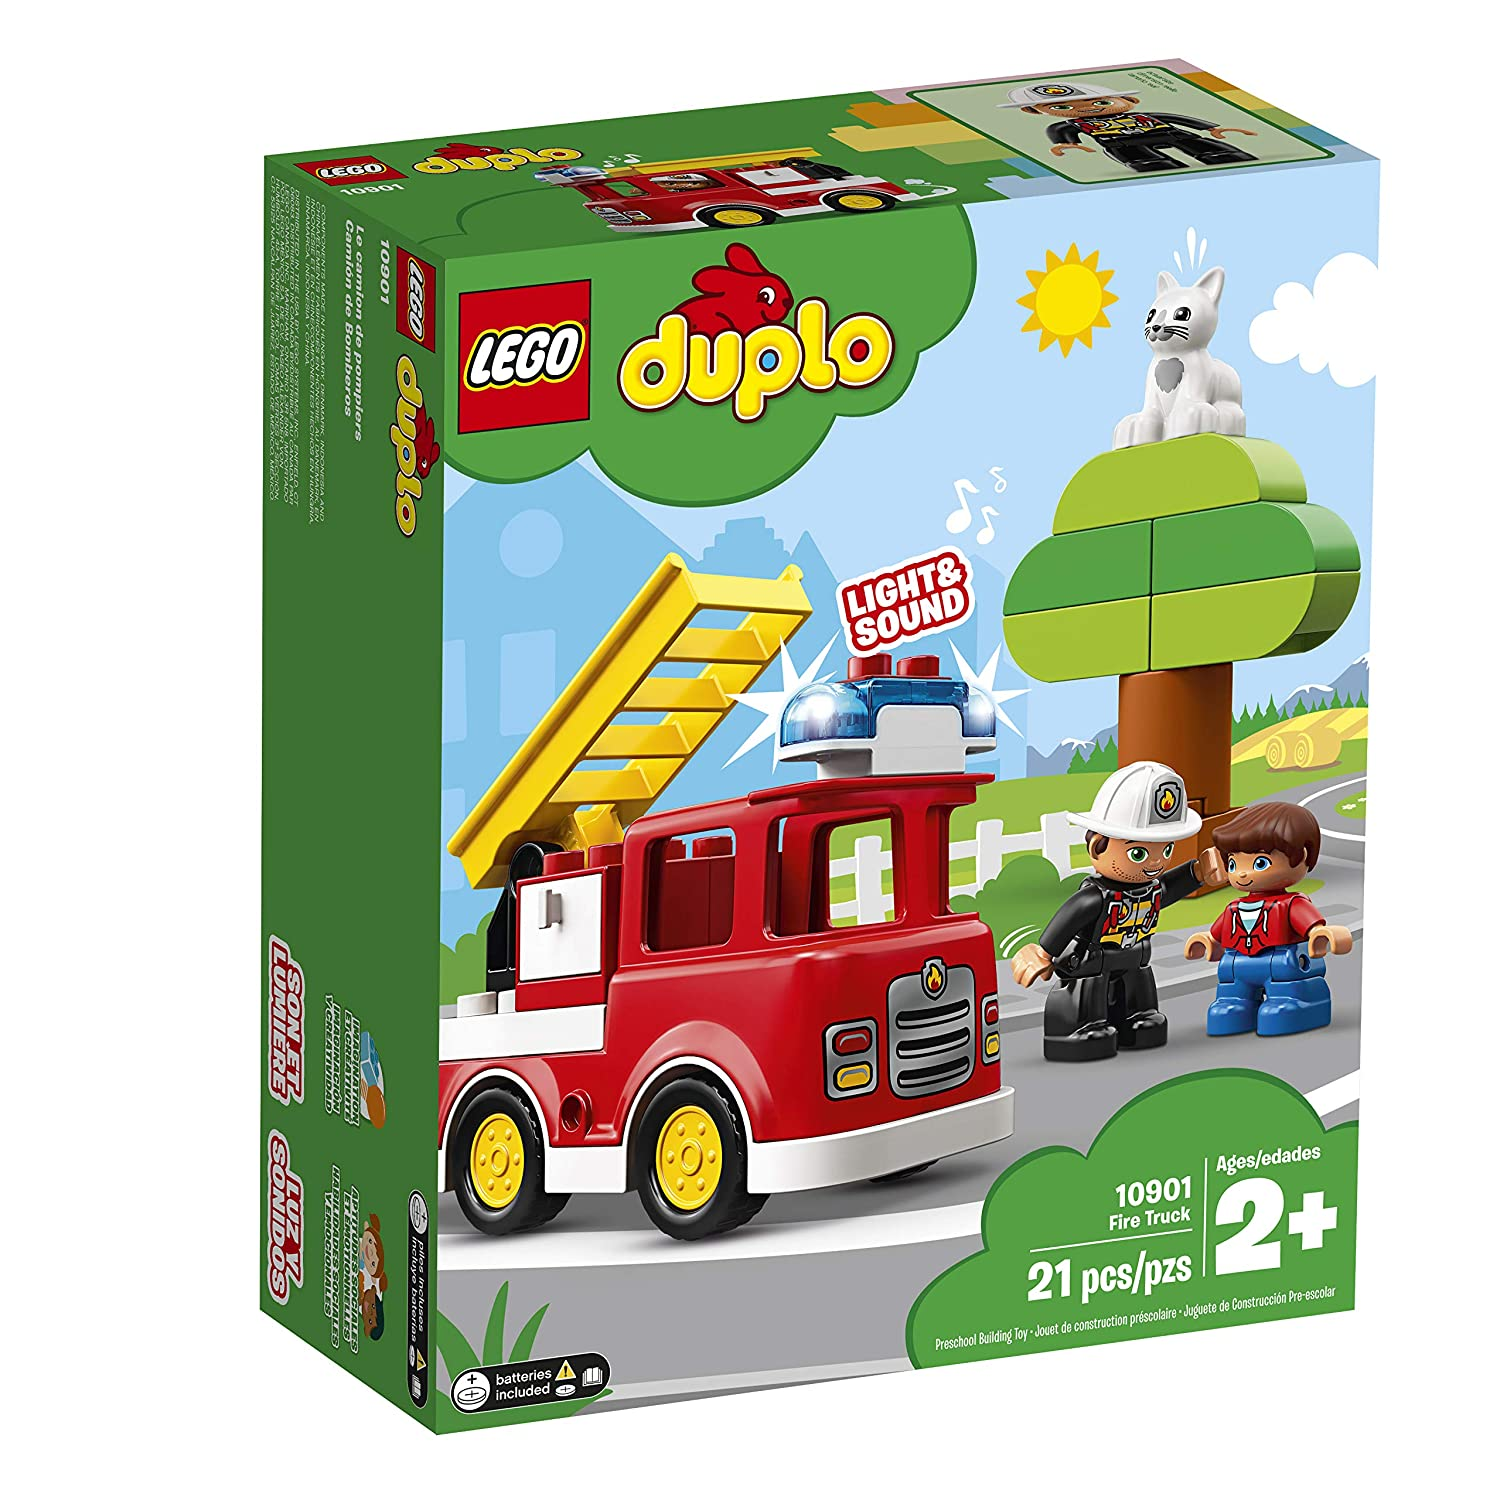 Top 9 Best LEGO Fire Truck Sets Reviews in 2021 17